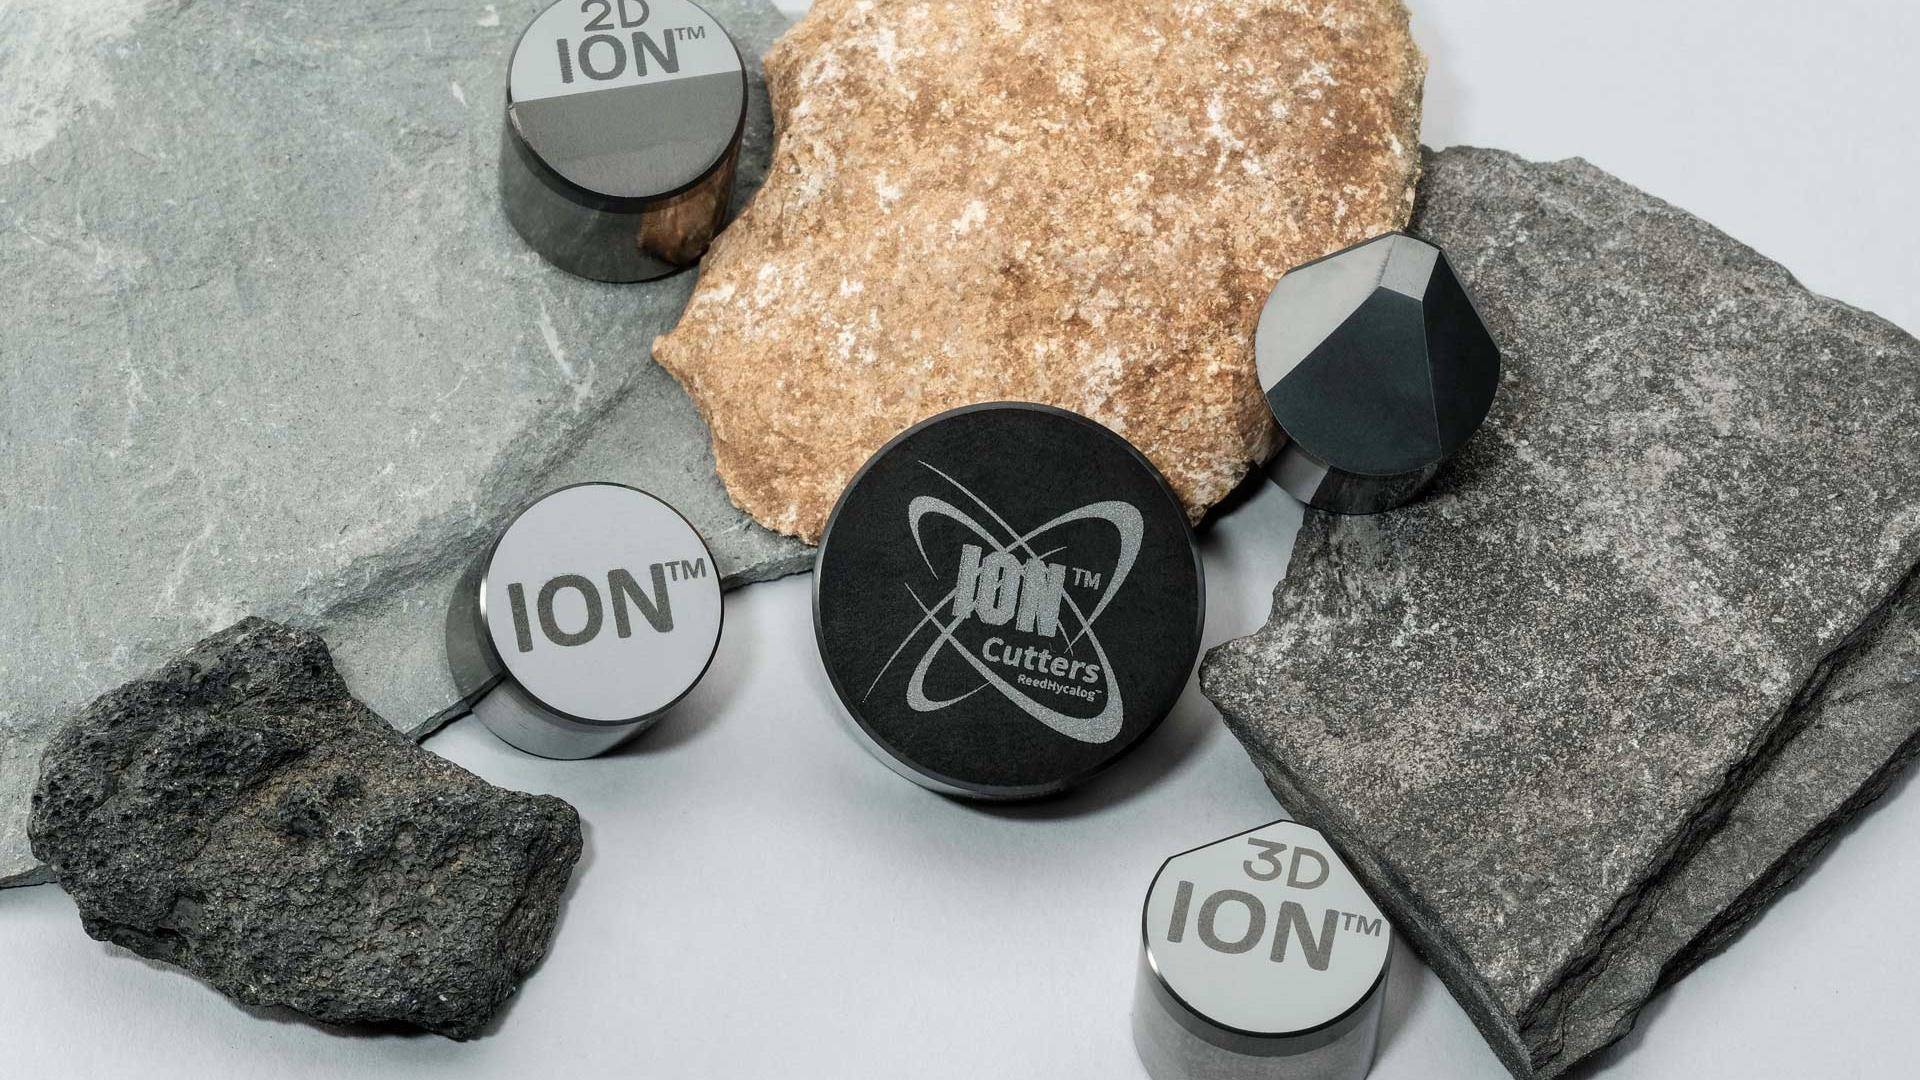 ION Cutter rock family